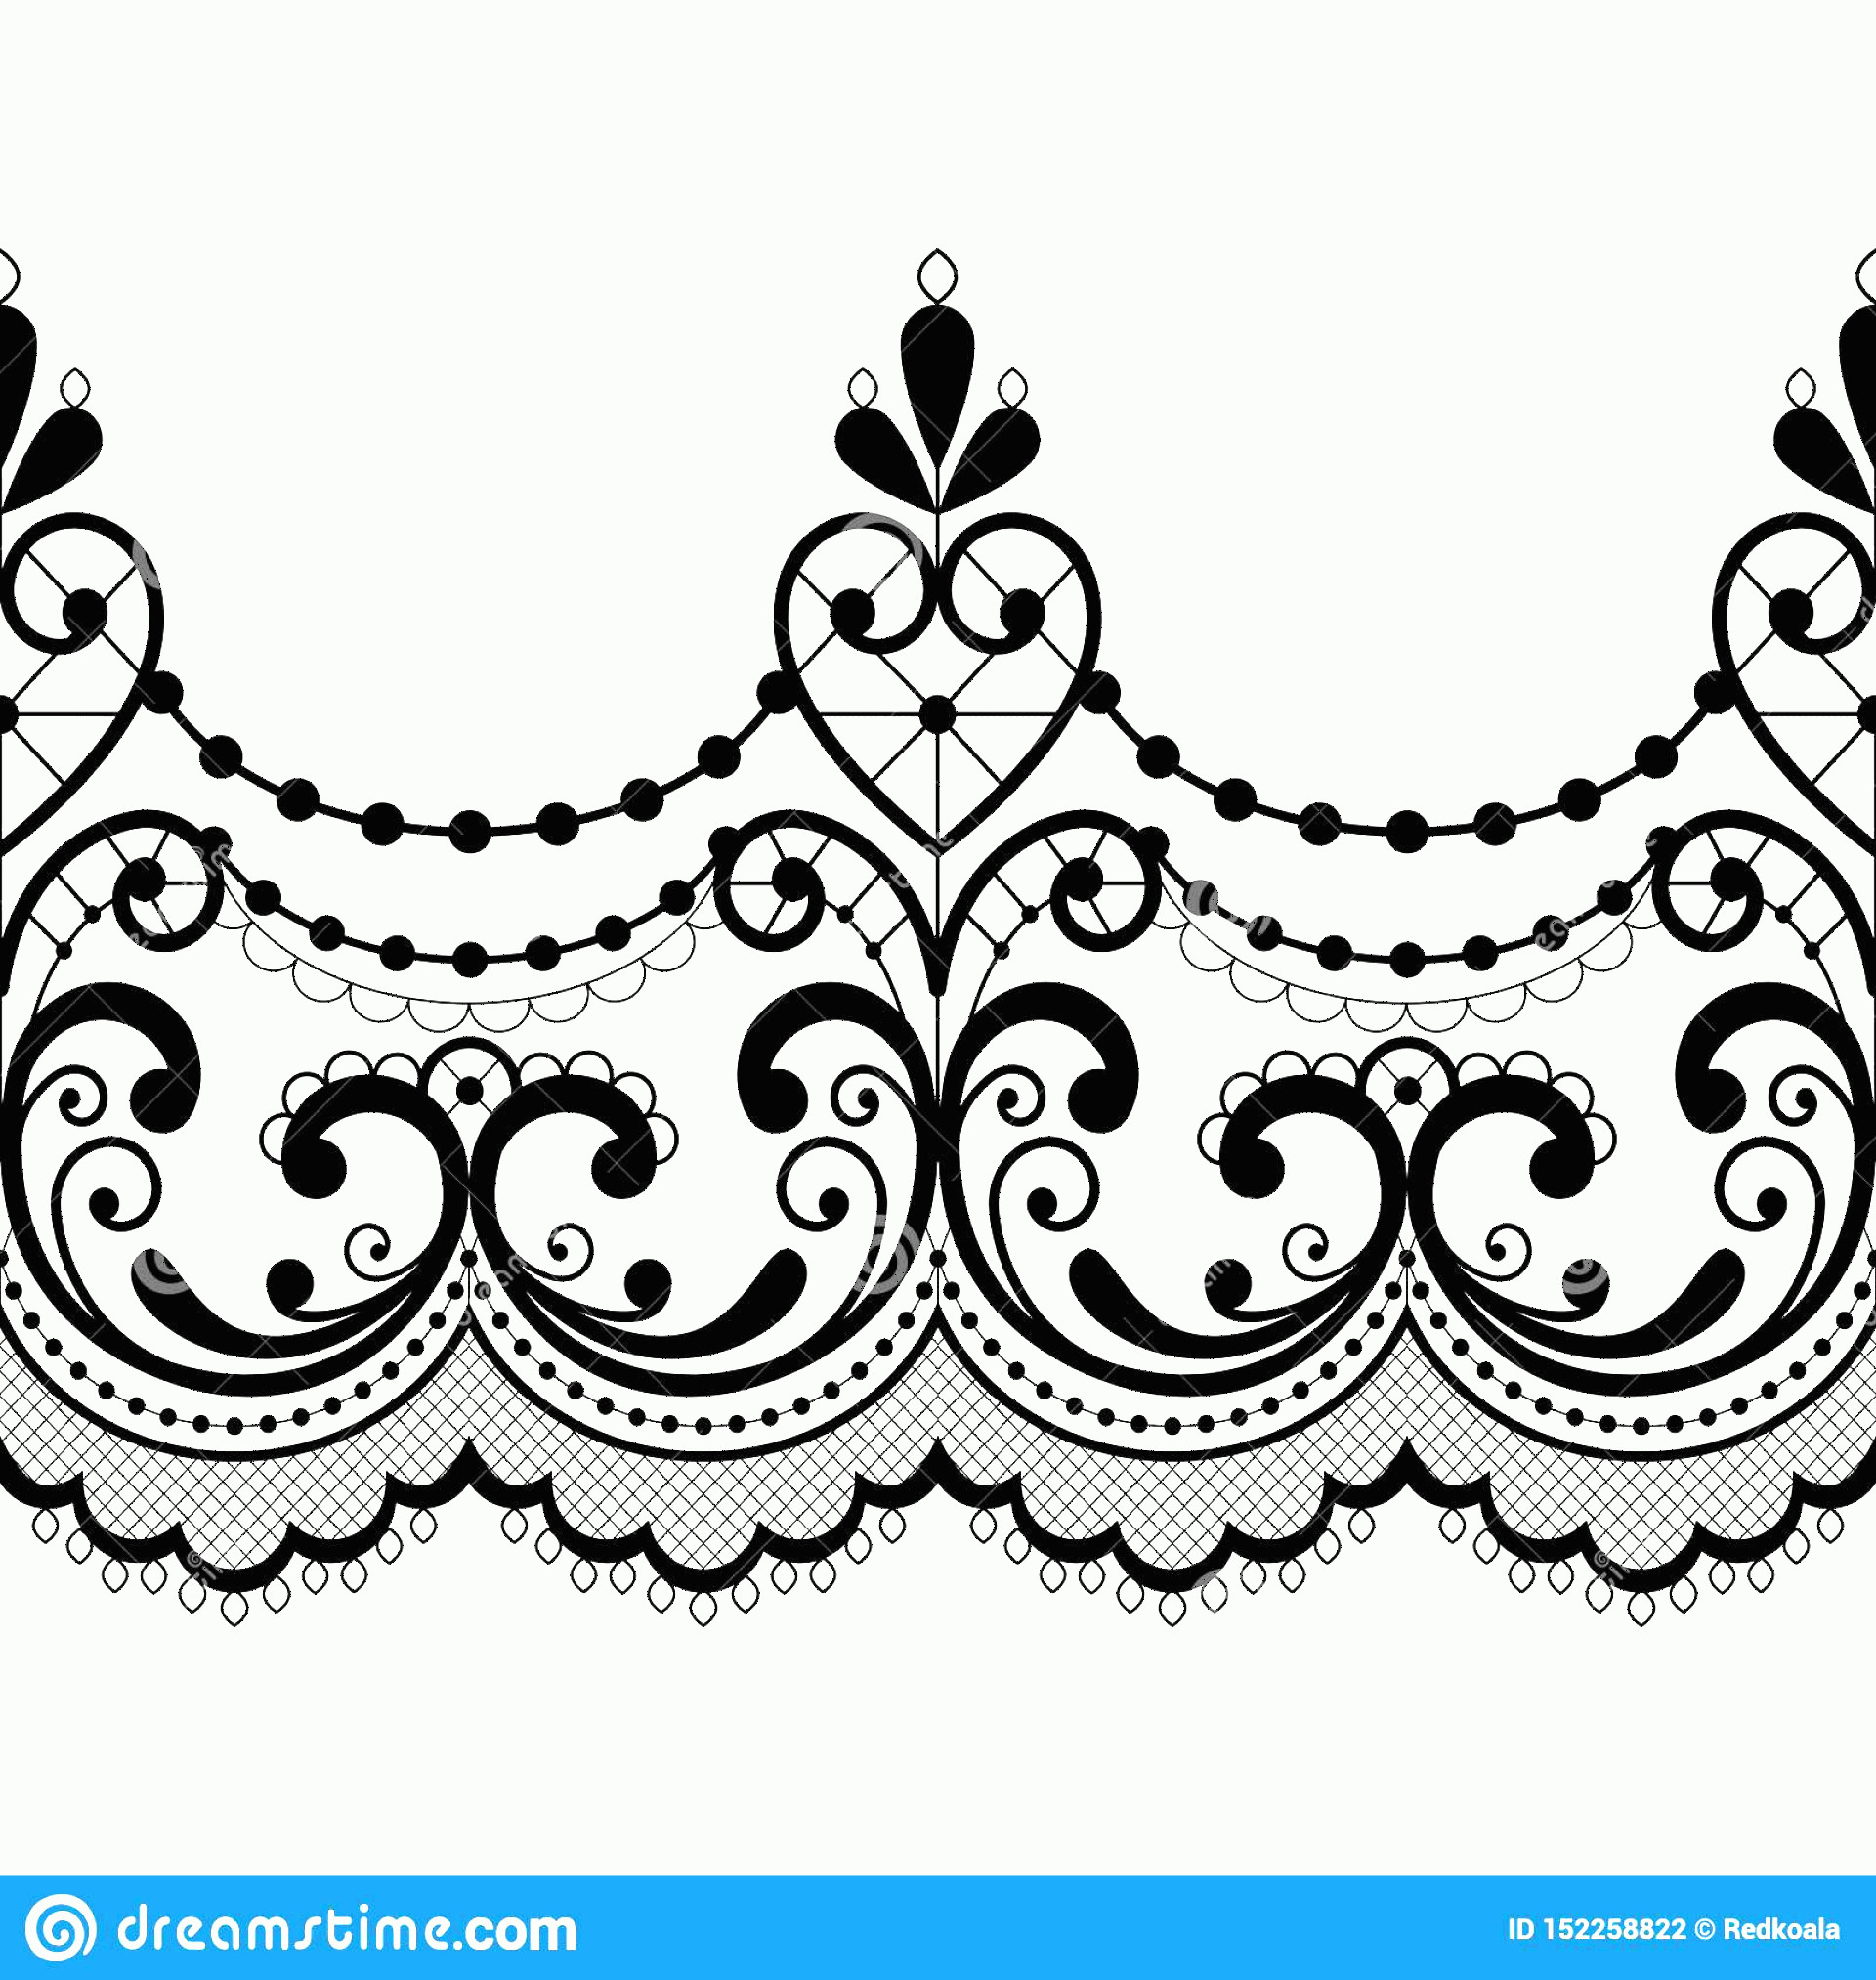 Lace Vector Images Free Clip Art: Alencon French Seamless Lace Vector Pattern Openwork Ornament Textile Embroidery Design Black White Background Monochrome Image